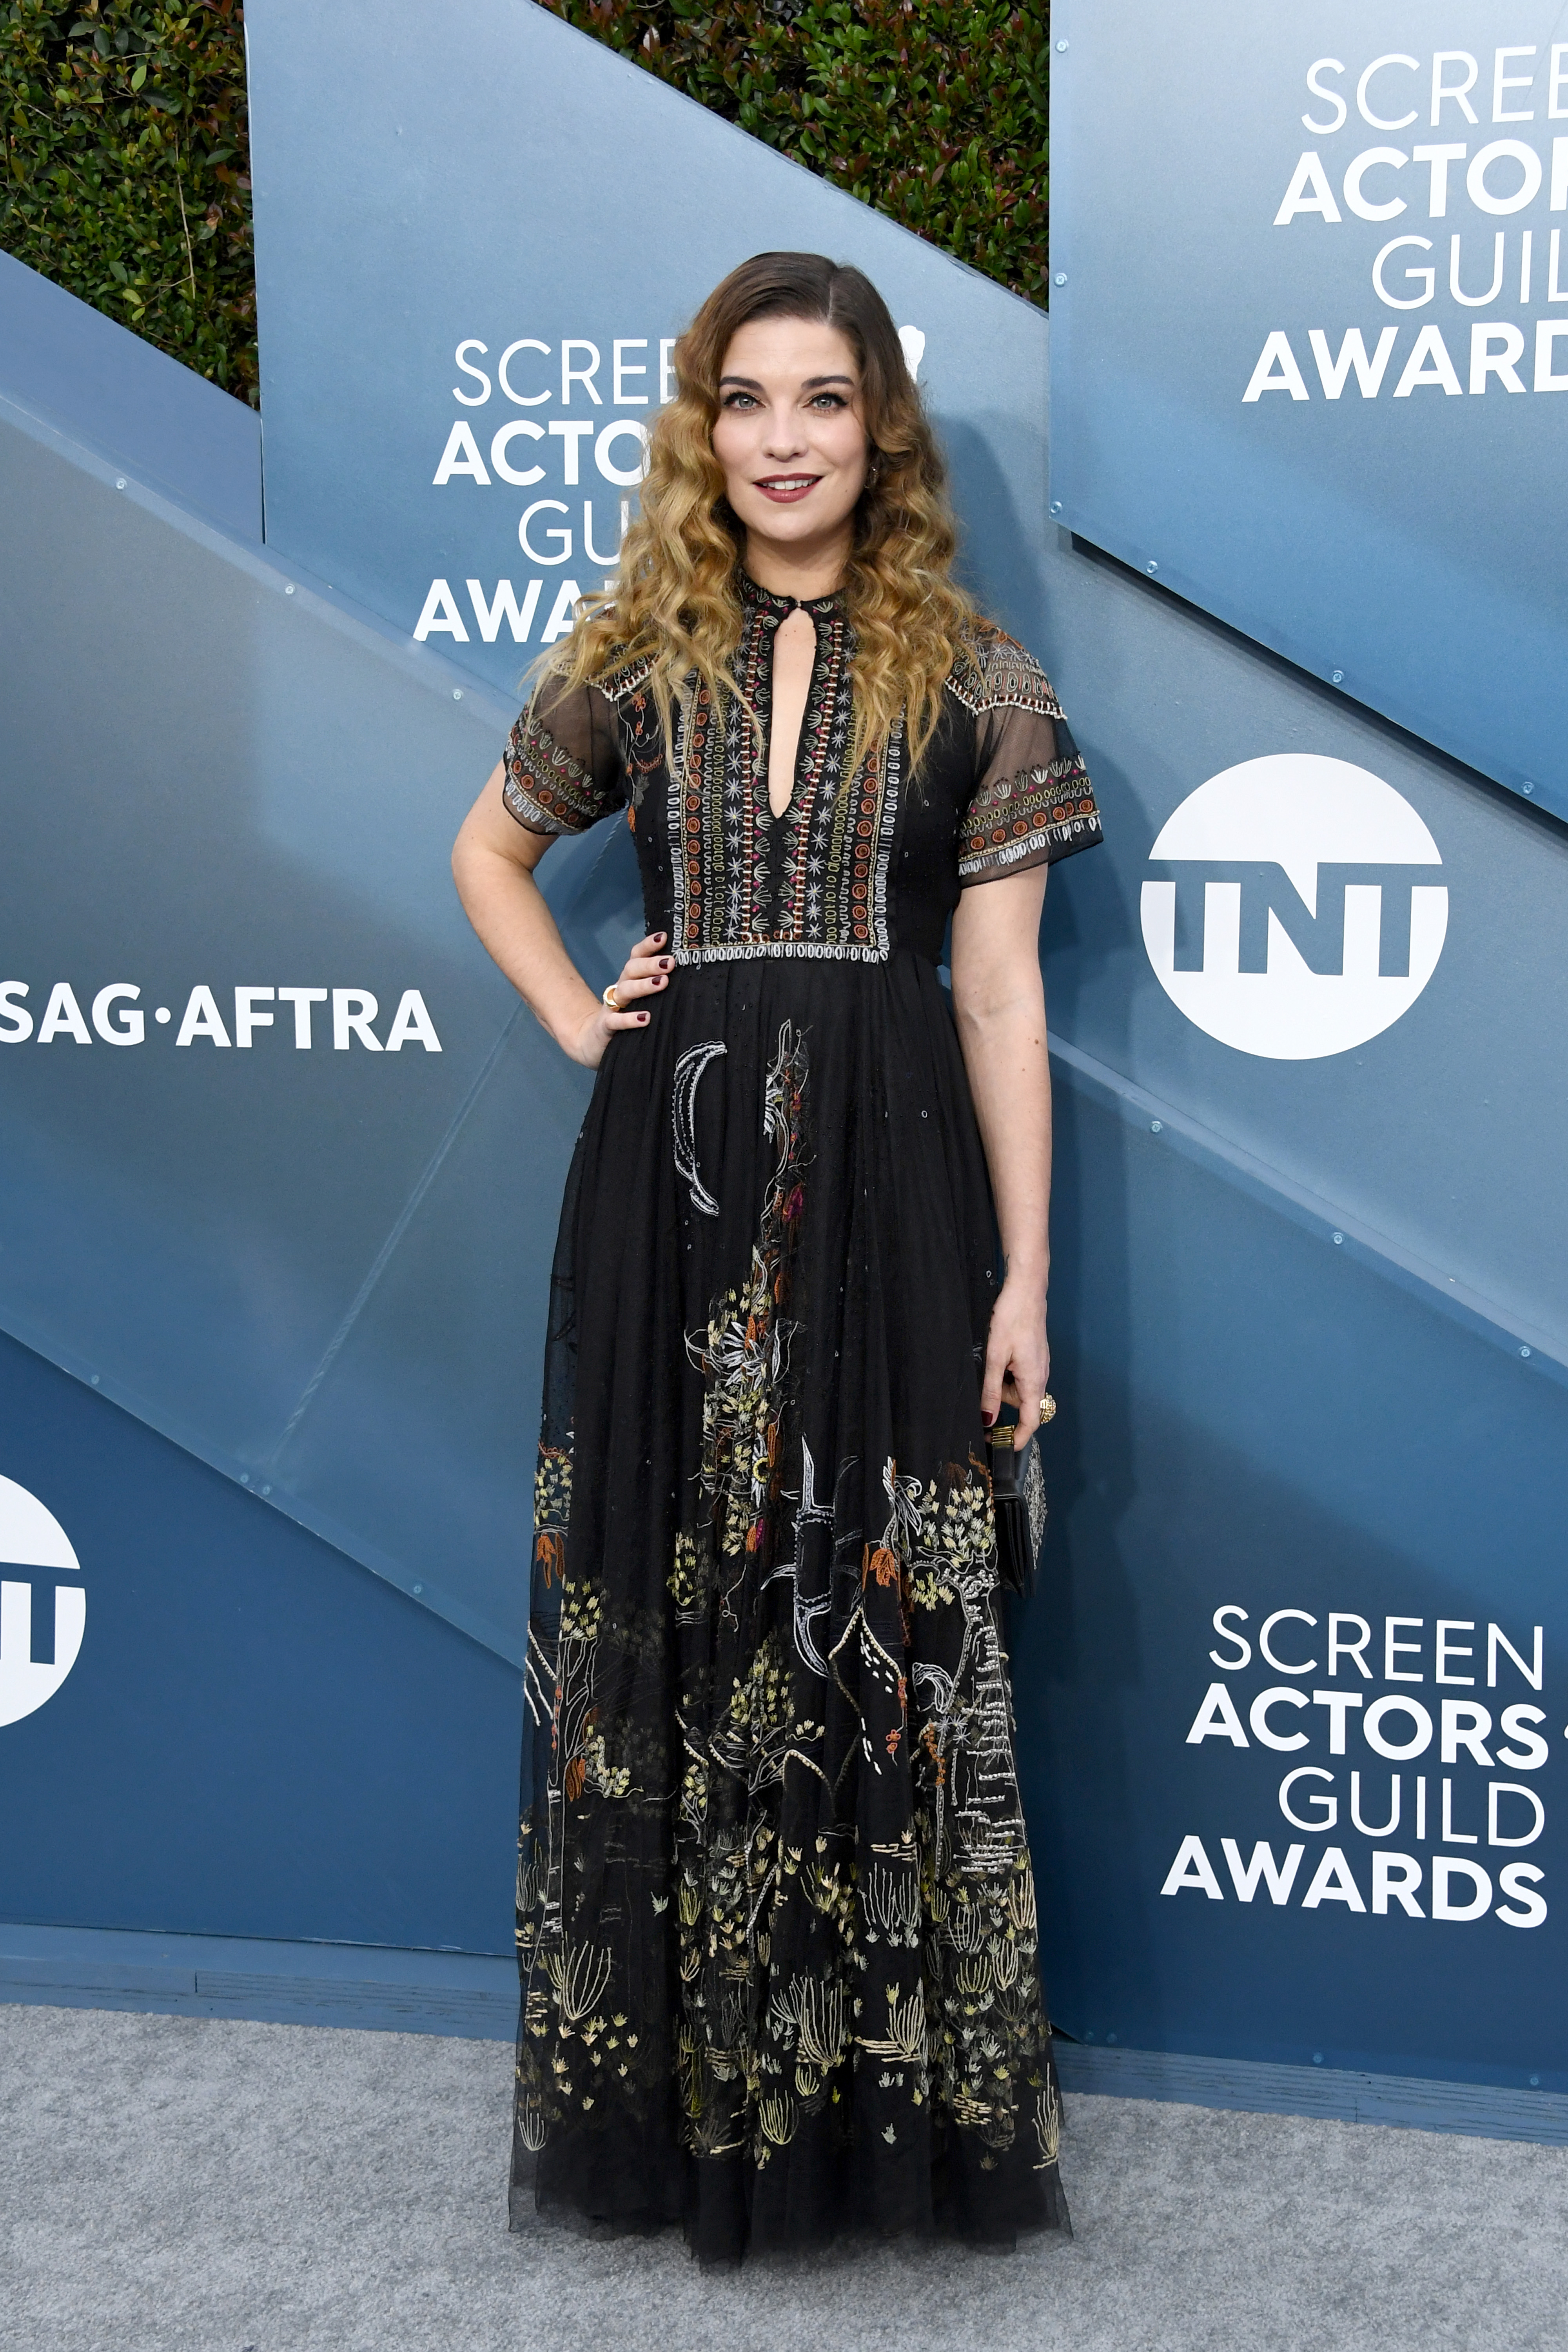 LOS ANGELES, CALIFORNIA - JANUARY 19: Annie Murphy attends the 26th Annual Screen ActorsGuild Awards at The Shrine Auditorium on January 19, 2020 in Los Angeles, California. (Photo by Jon Kopaloff/Getty Images)